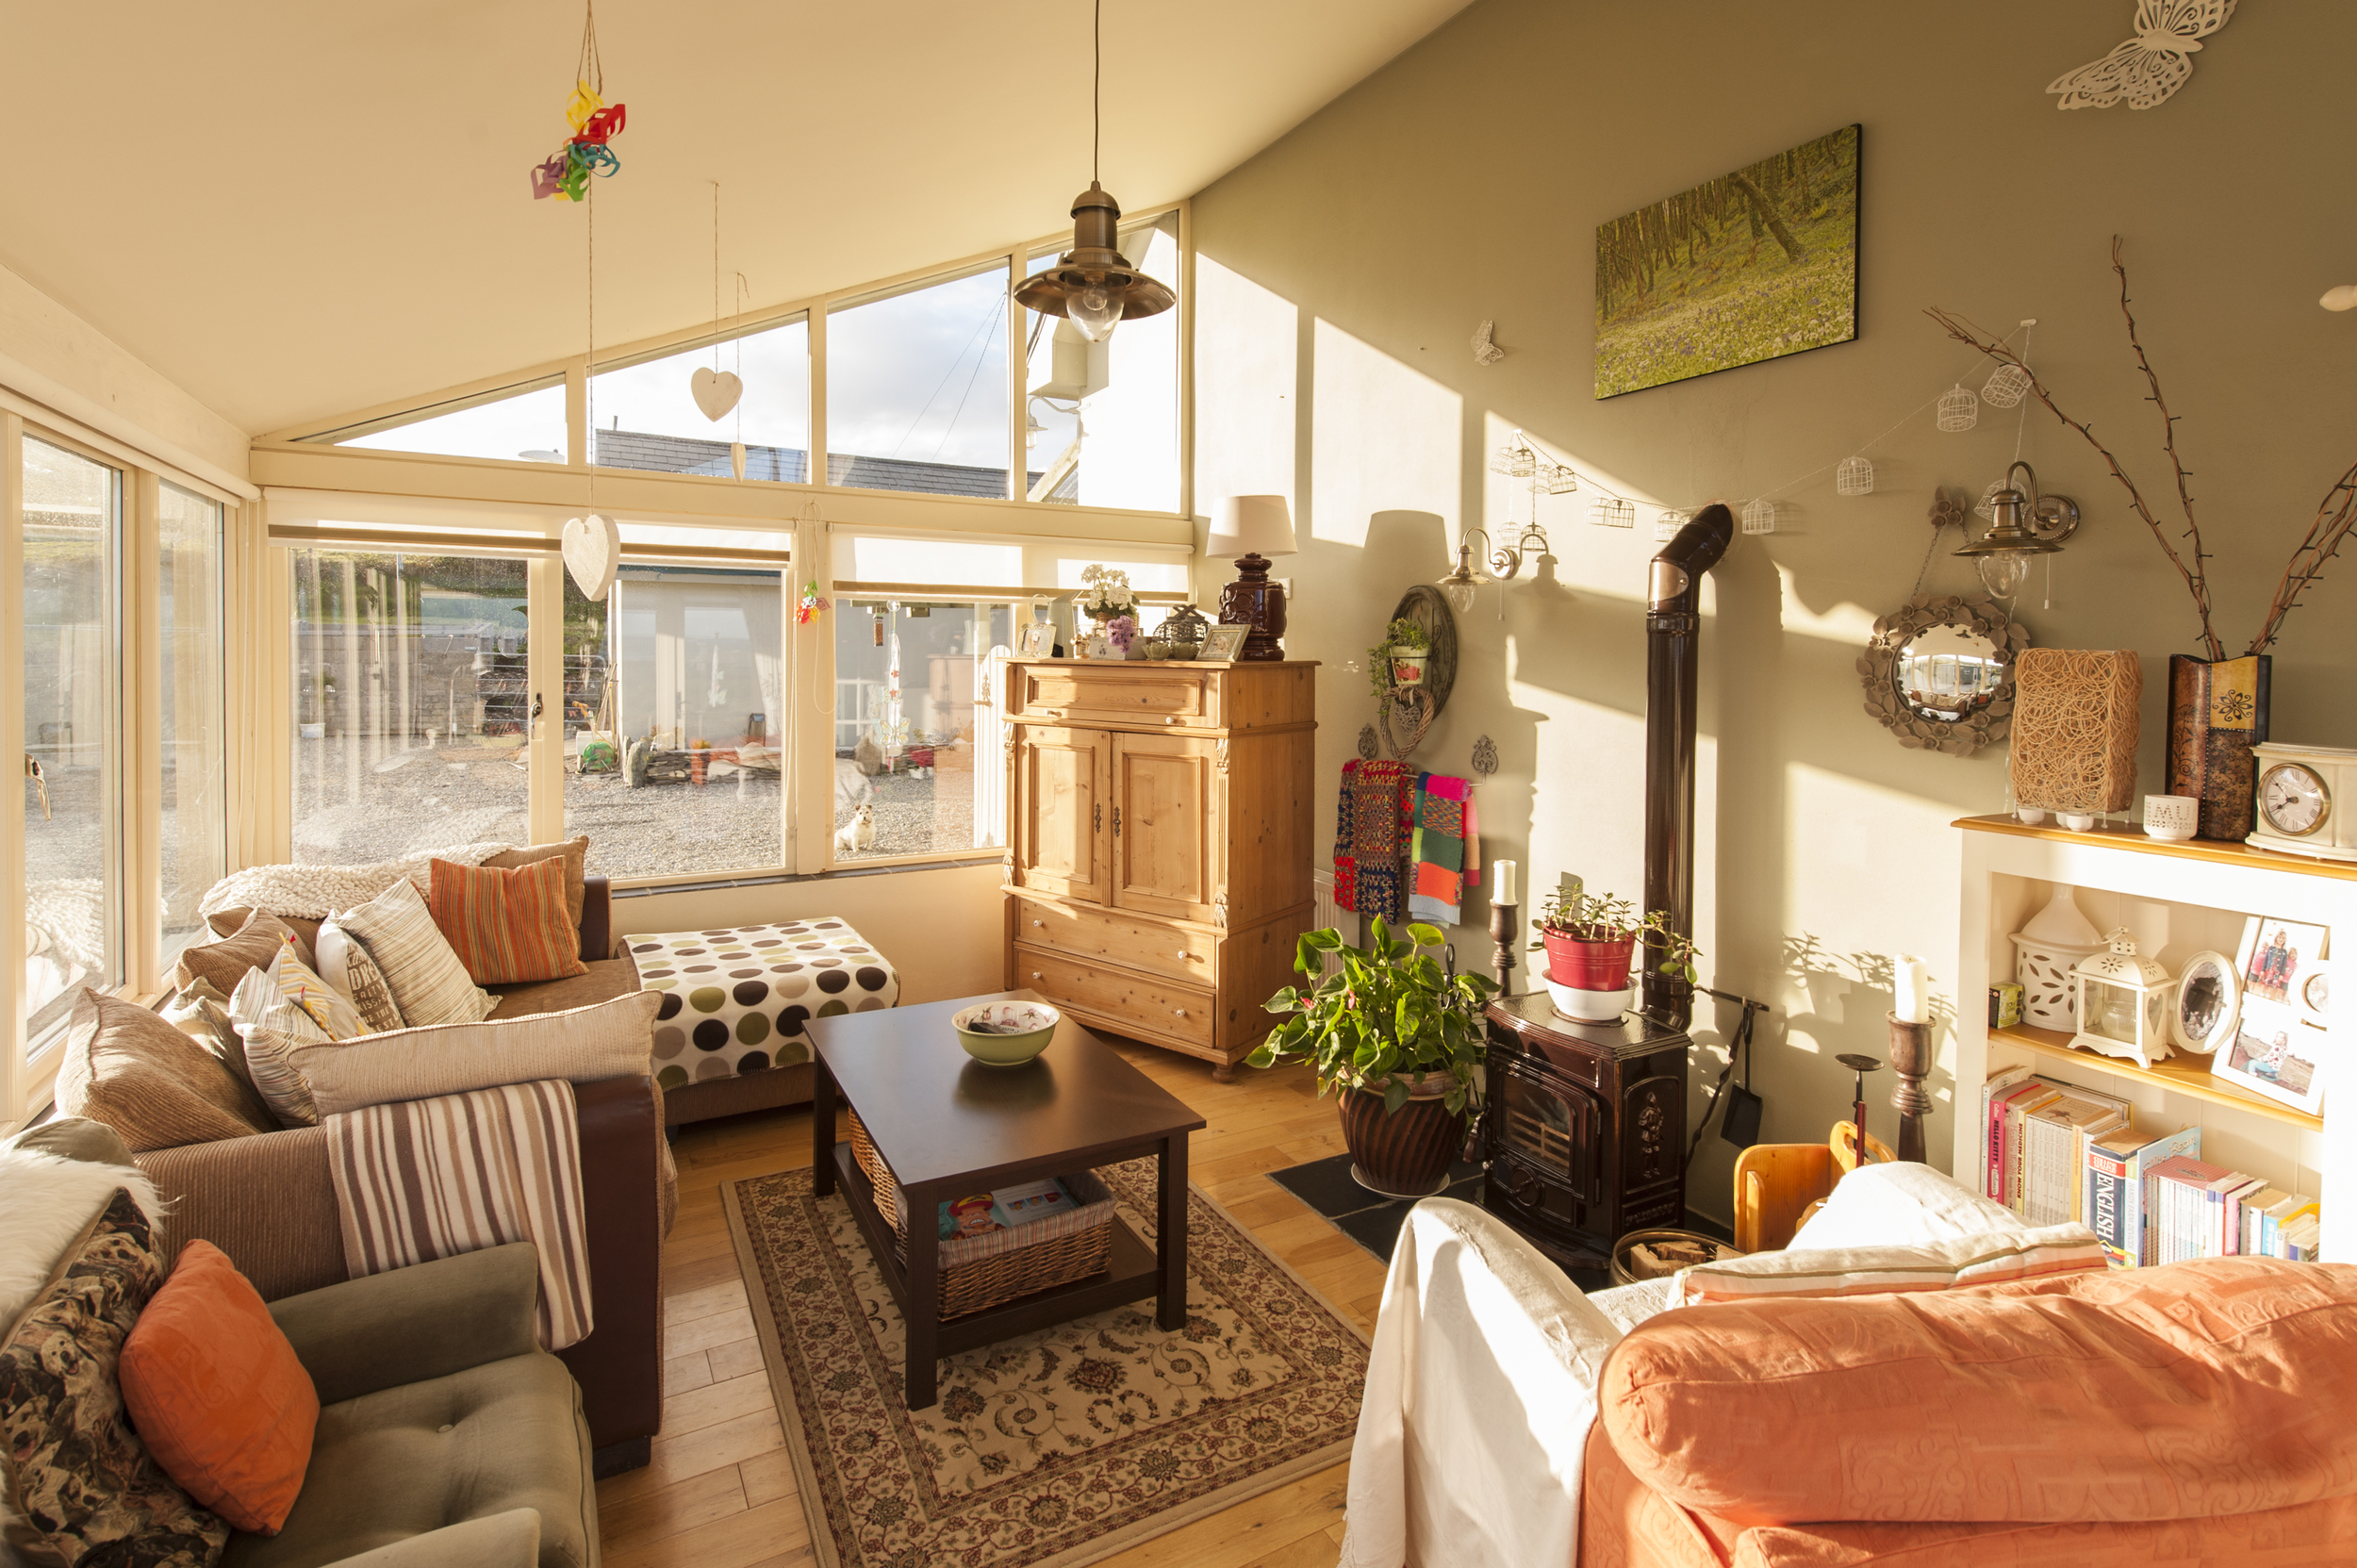 The sun room lives up to its name.